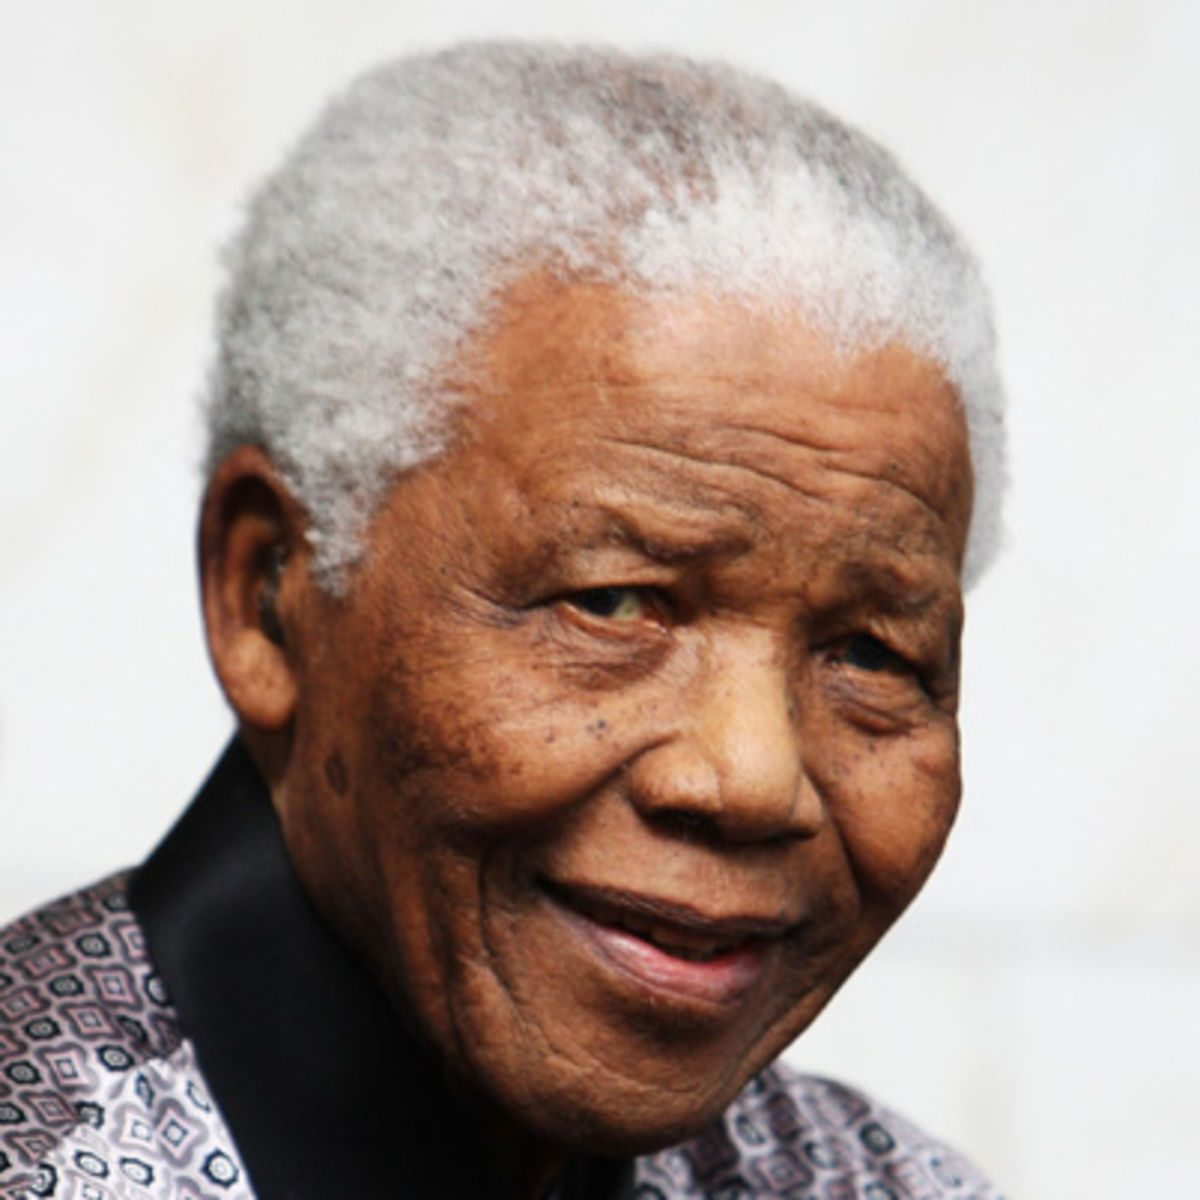 a biography of nelson mandela a south african anti apartheid revolutionary African anti-apartheid revolutionary, political leader, and philanthropist who served as president of south africa from 1994 to 1999 he was the country's first black head of state and the first elected in a fully representative democratic election.